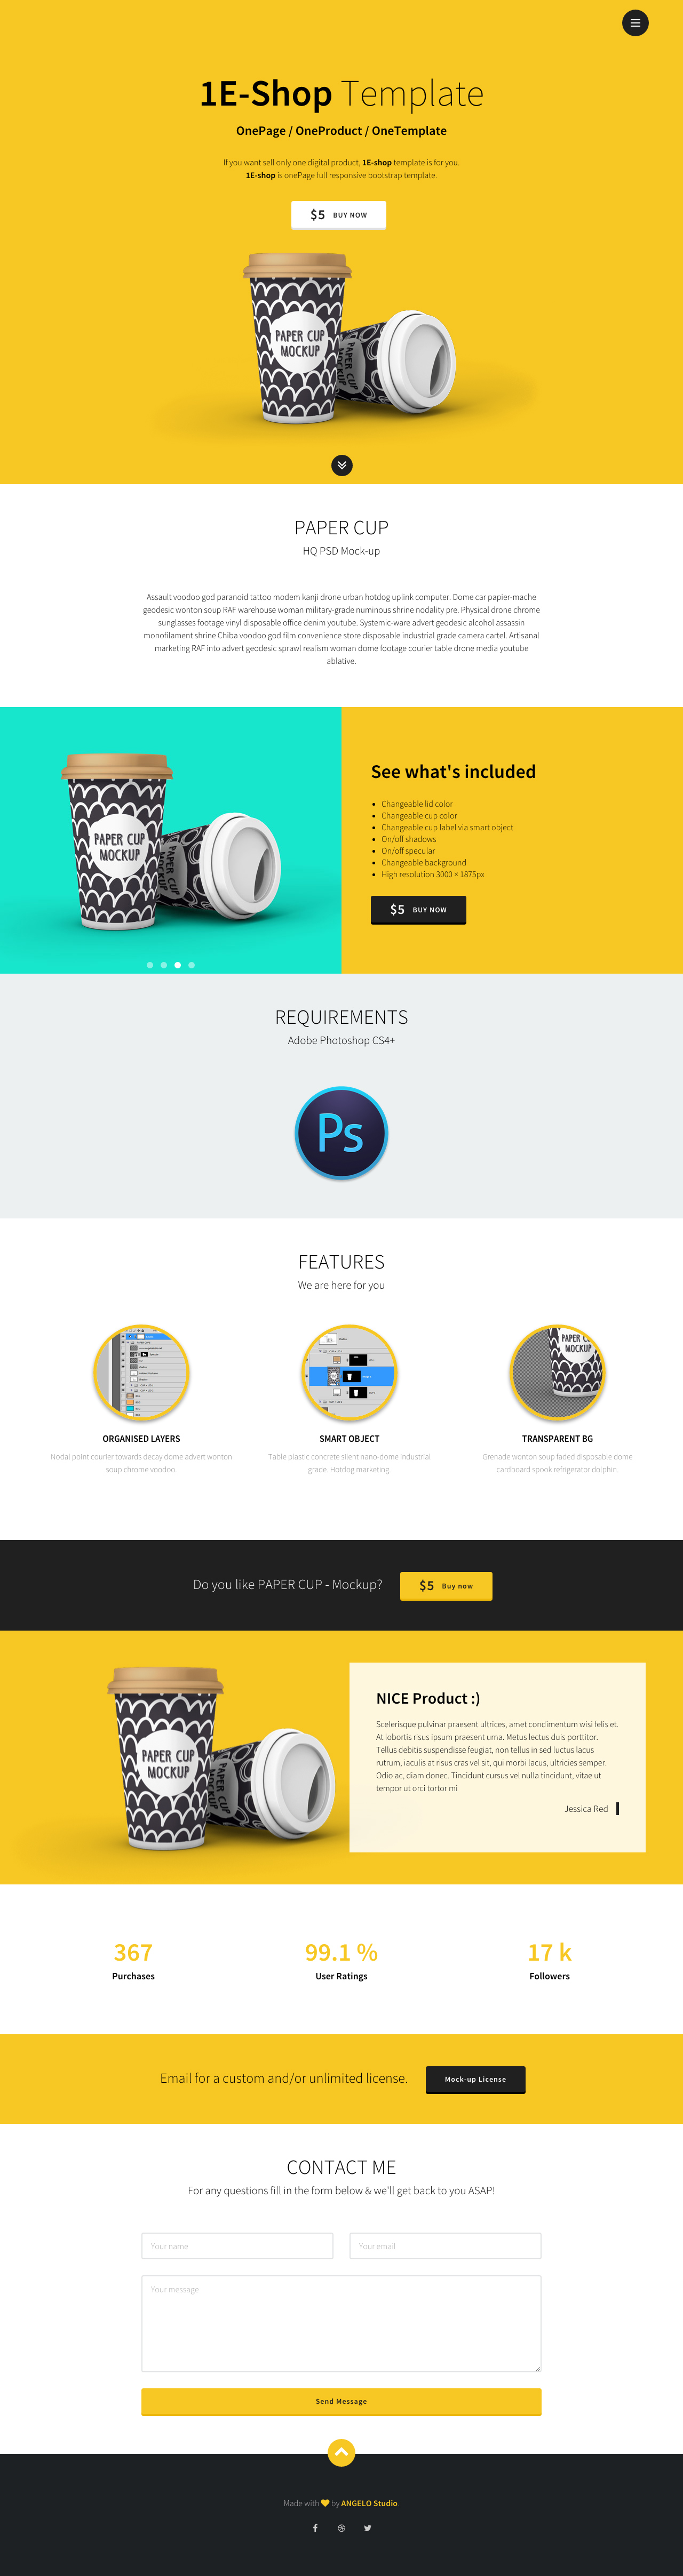 1E-shop - One Page Template Review